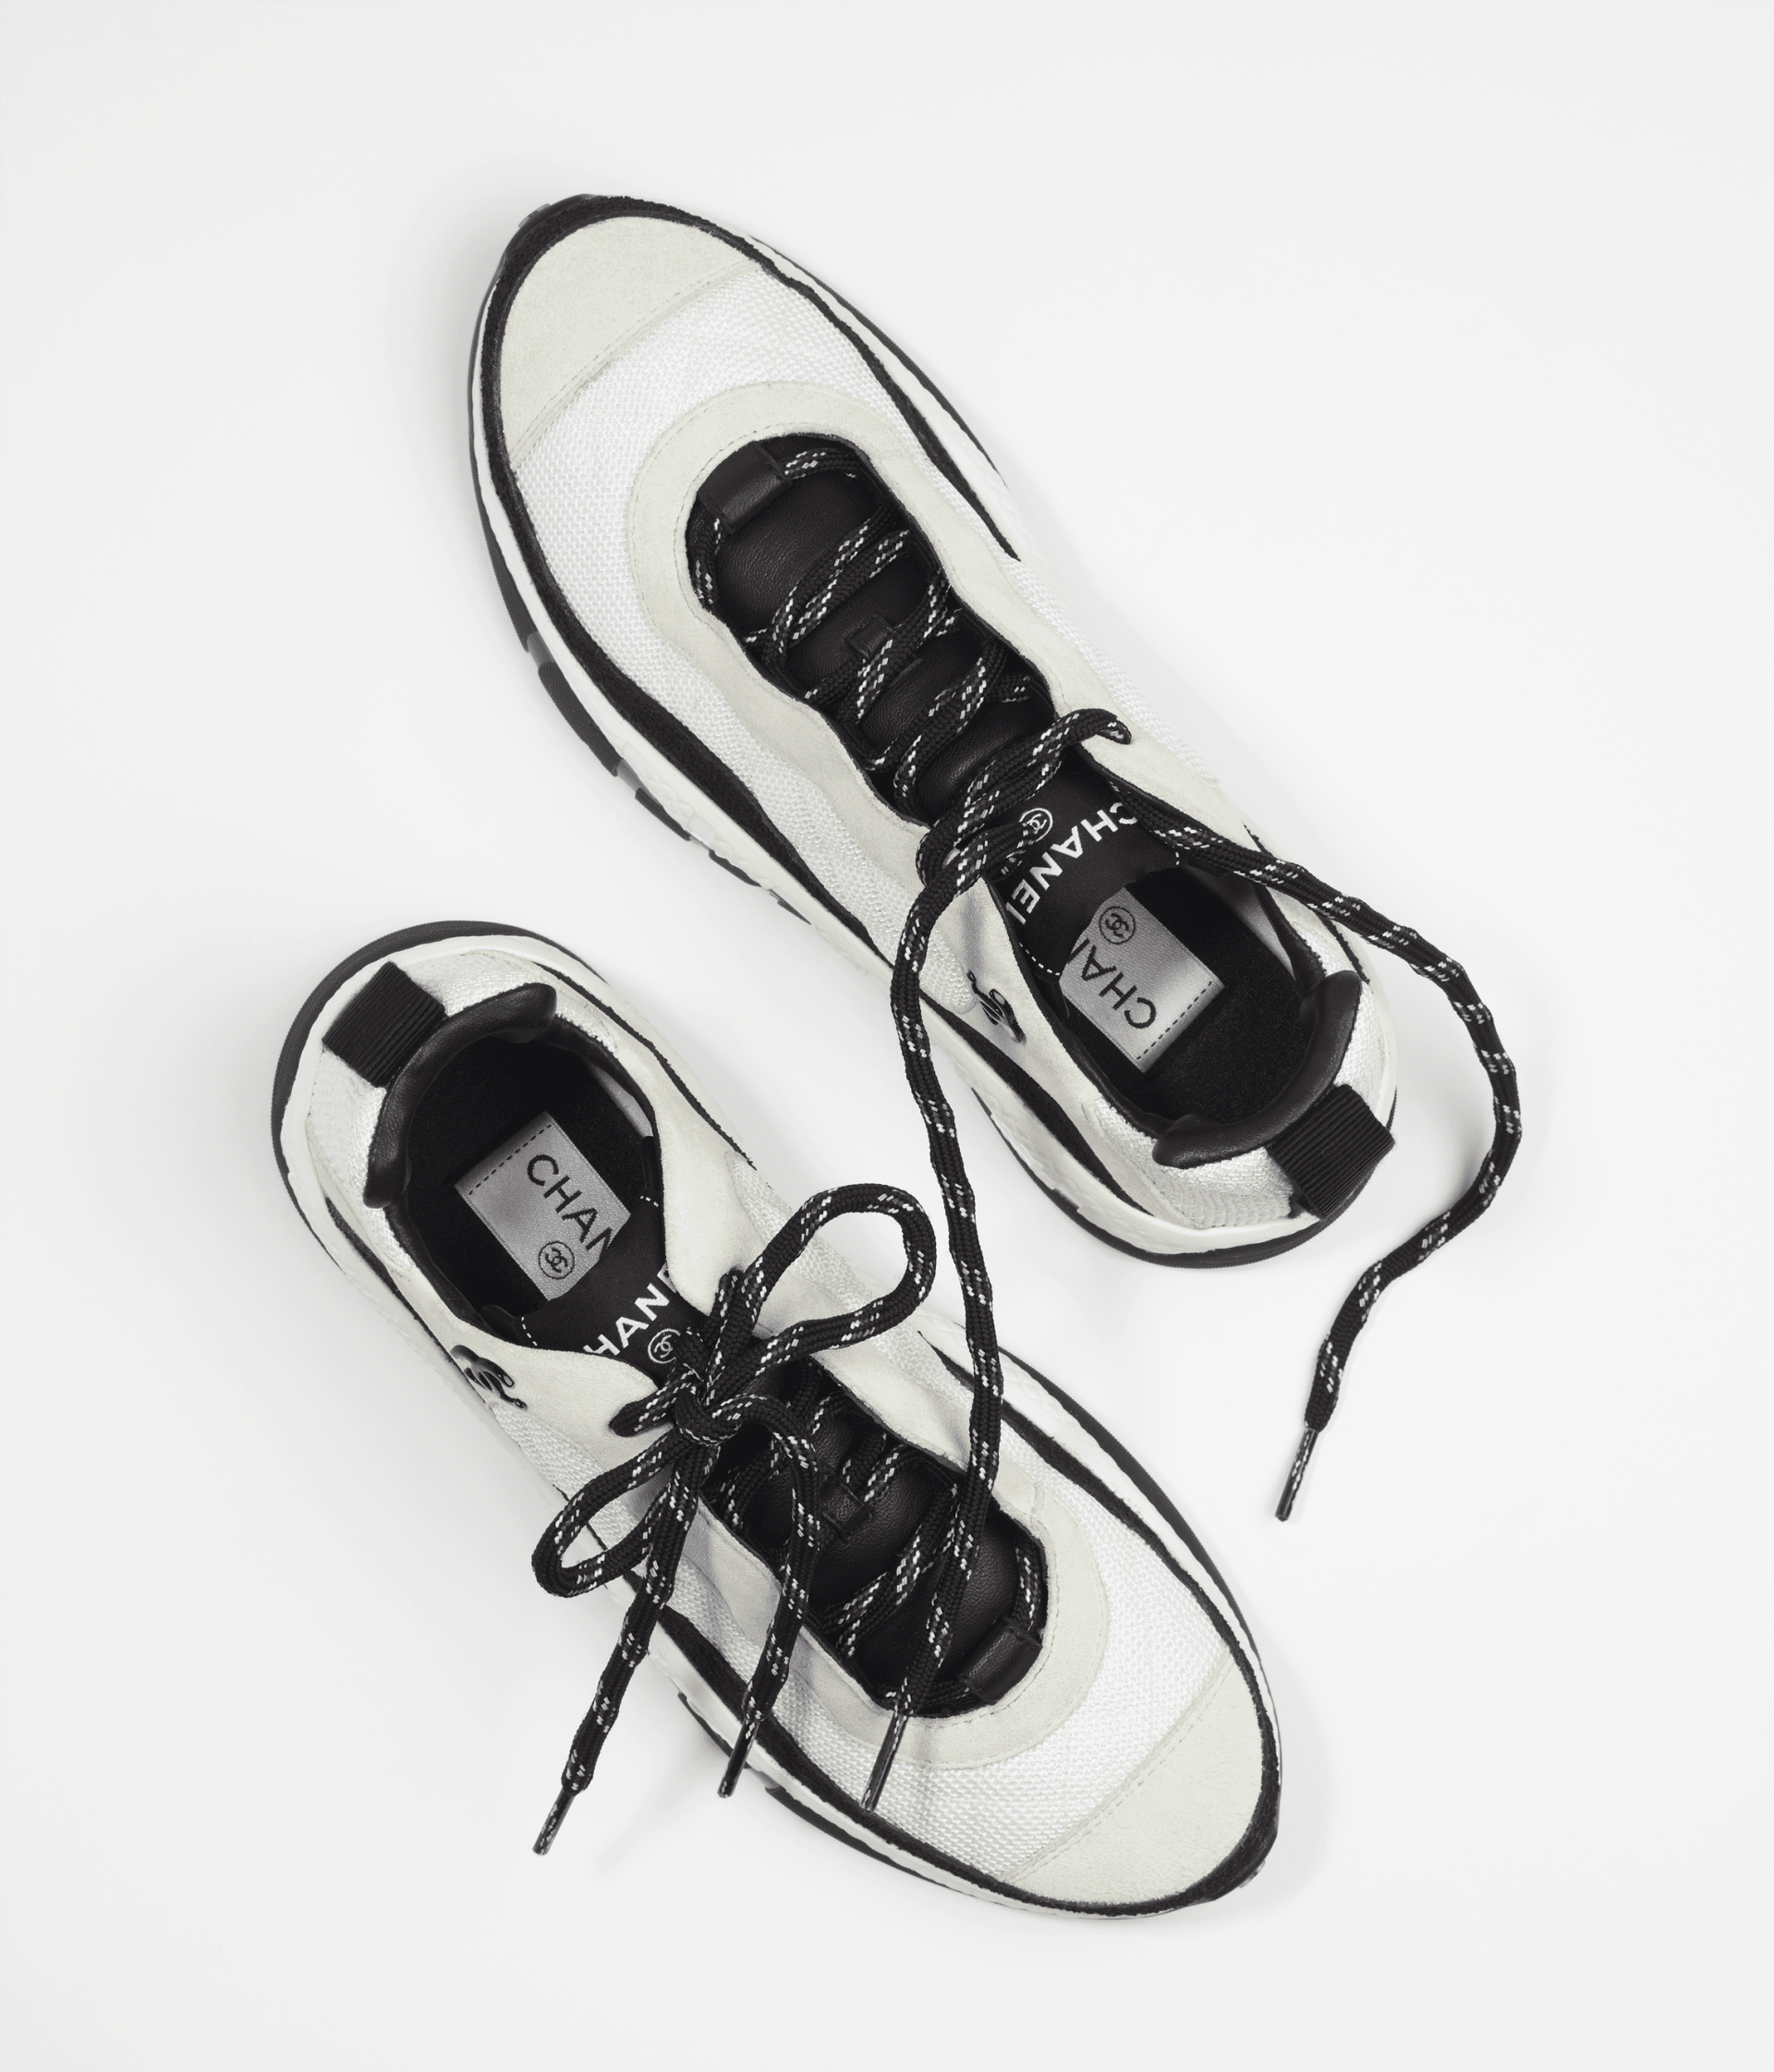 image 2 - Sneakers - Fabric & Suede Calfskin - White & Ivory